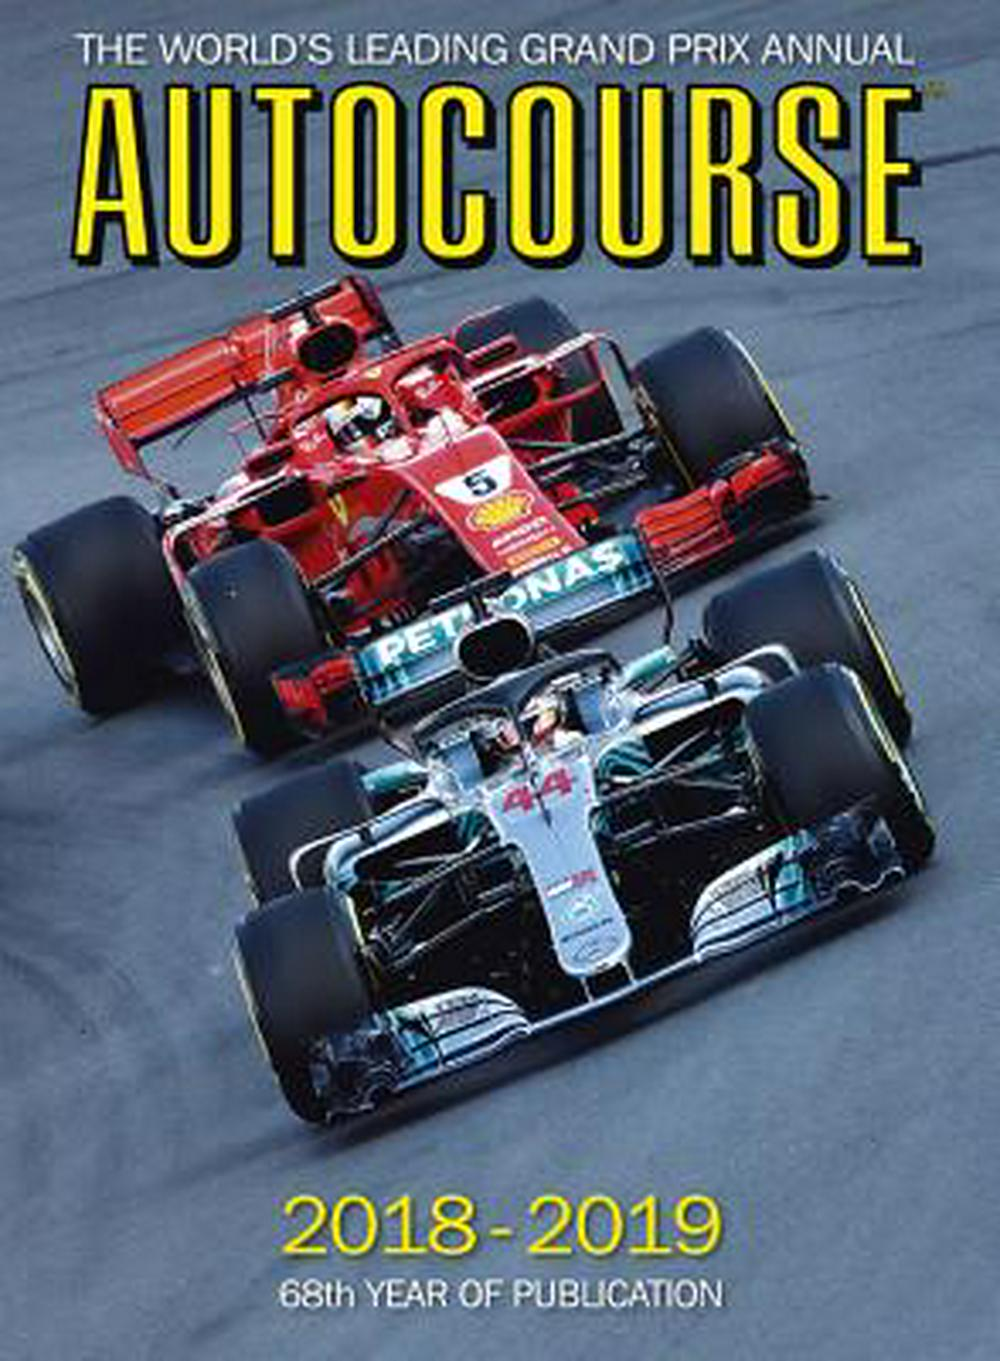 Autocourse 2018-19: The World's Leading Grand Prix Annual by Maurice Hamilton, ISBN: 9781910584316